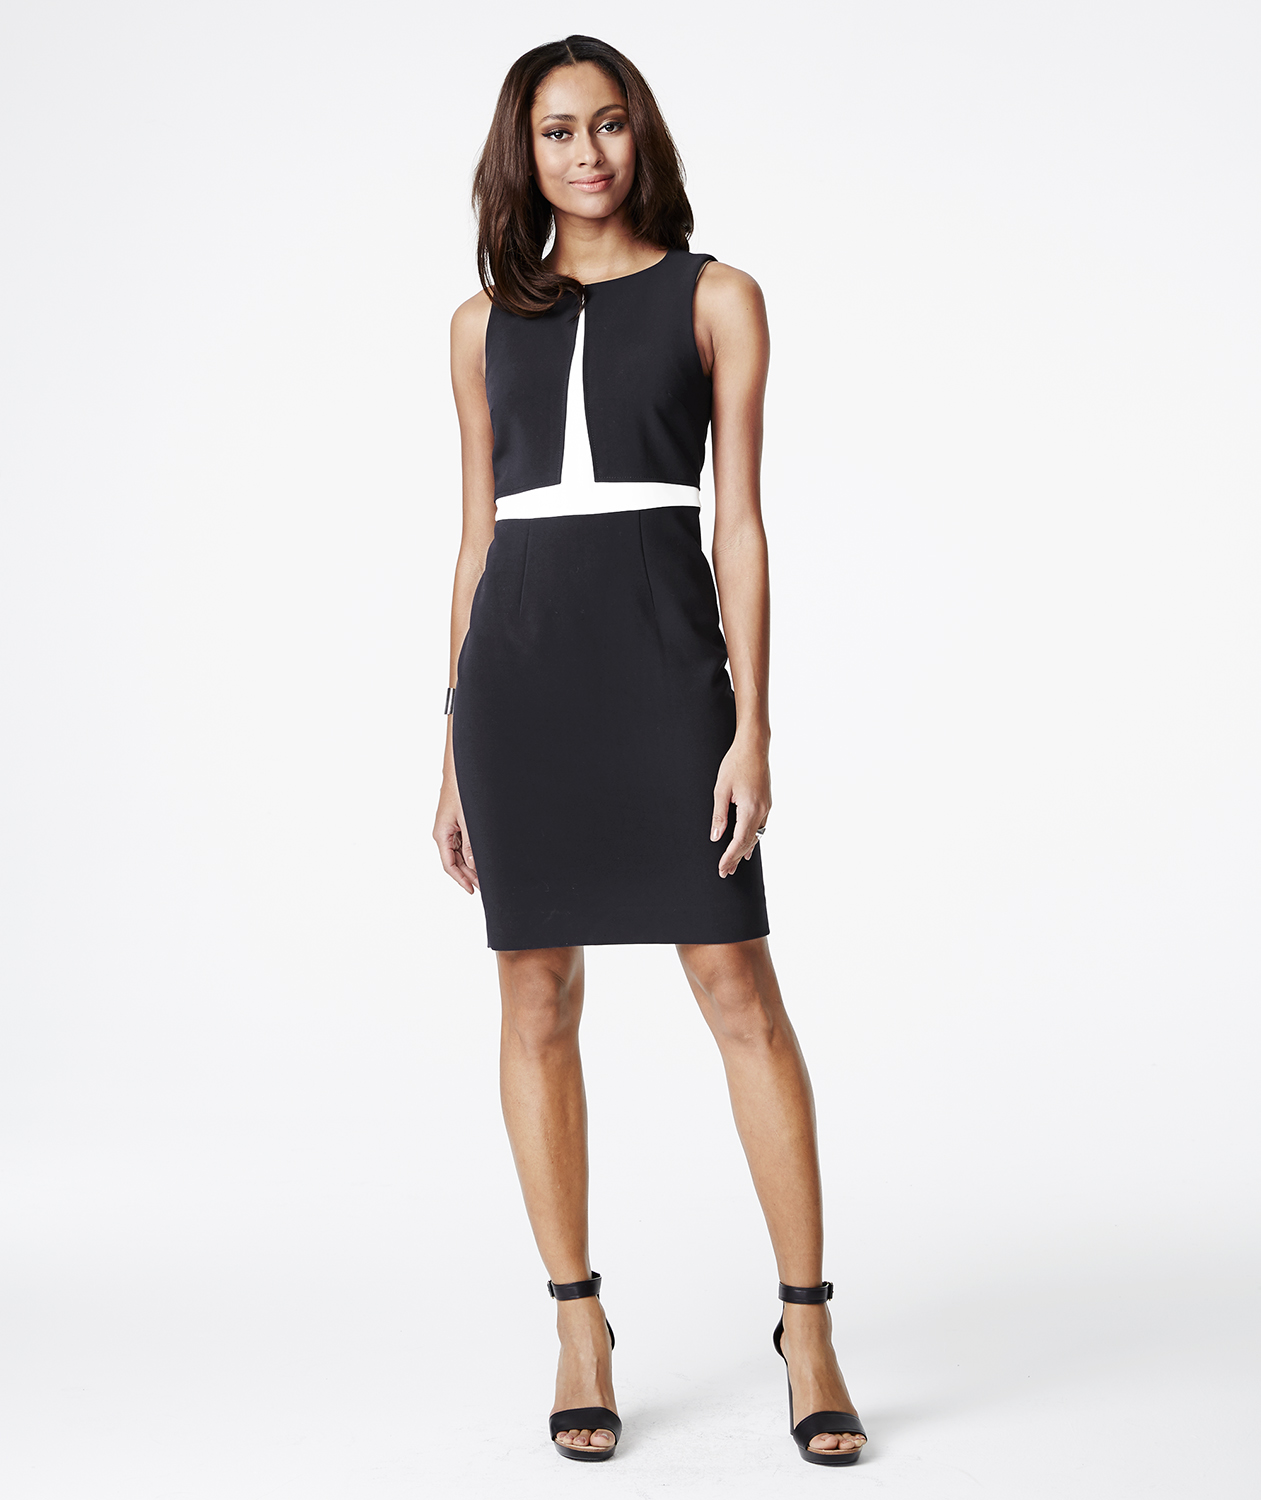 5252e39cd92 The Limited Colorblocked Sheath Dress